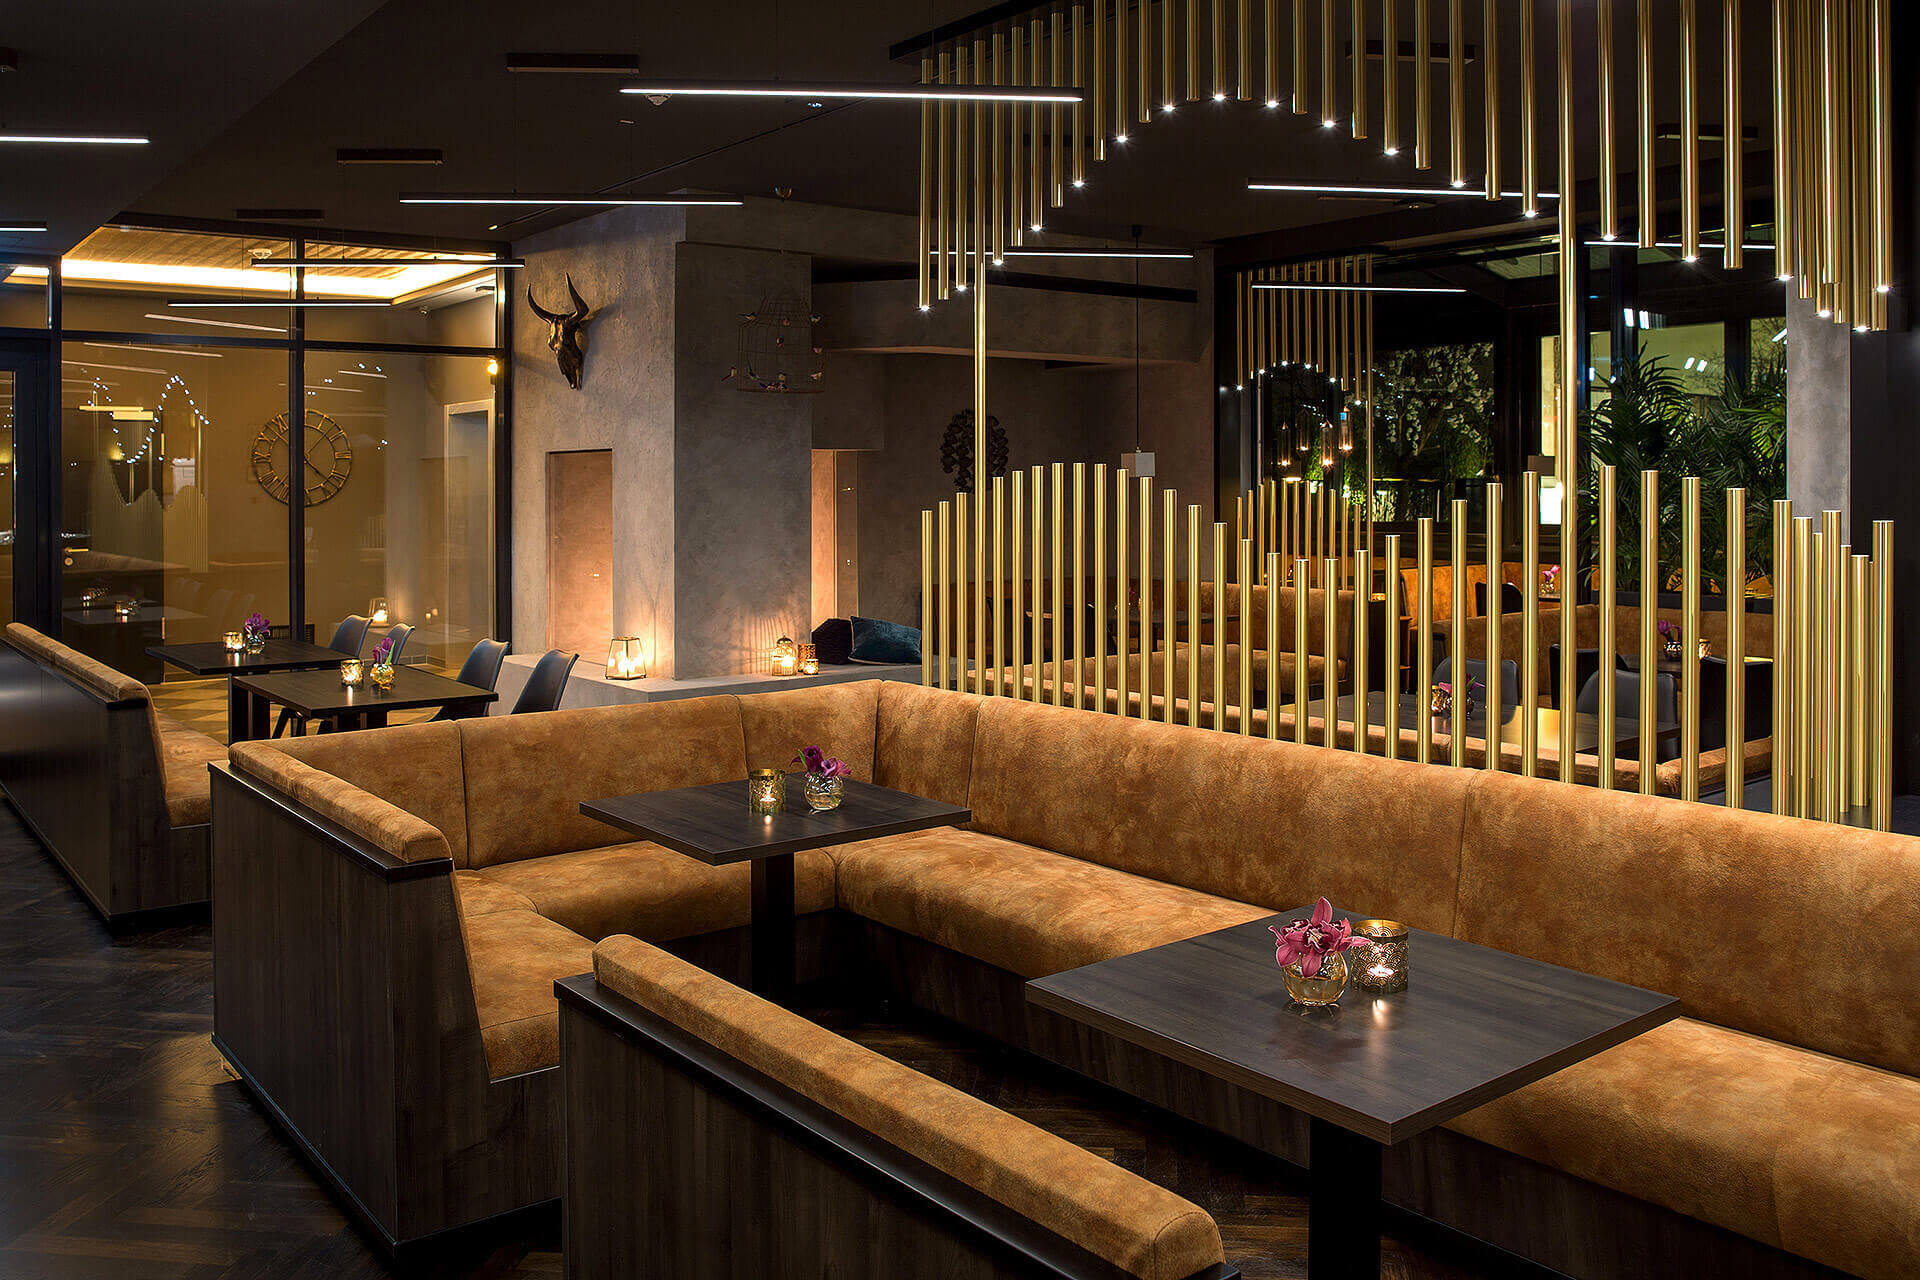 Amano group boutique hotels restaurants bars in berlin for Boutique hotel group